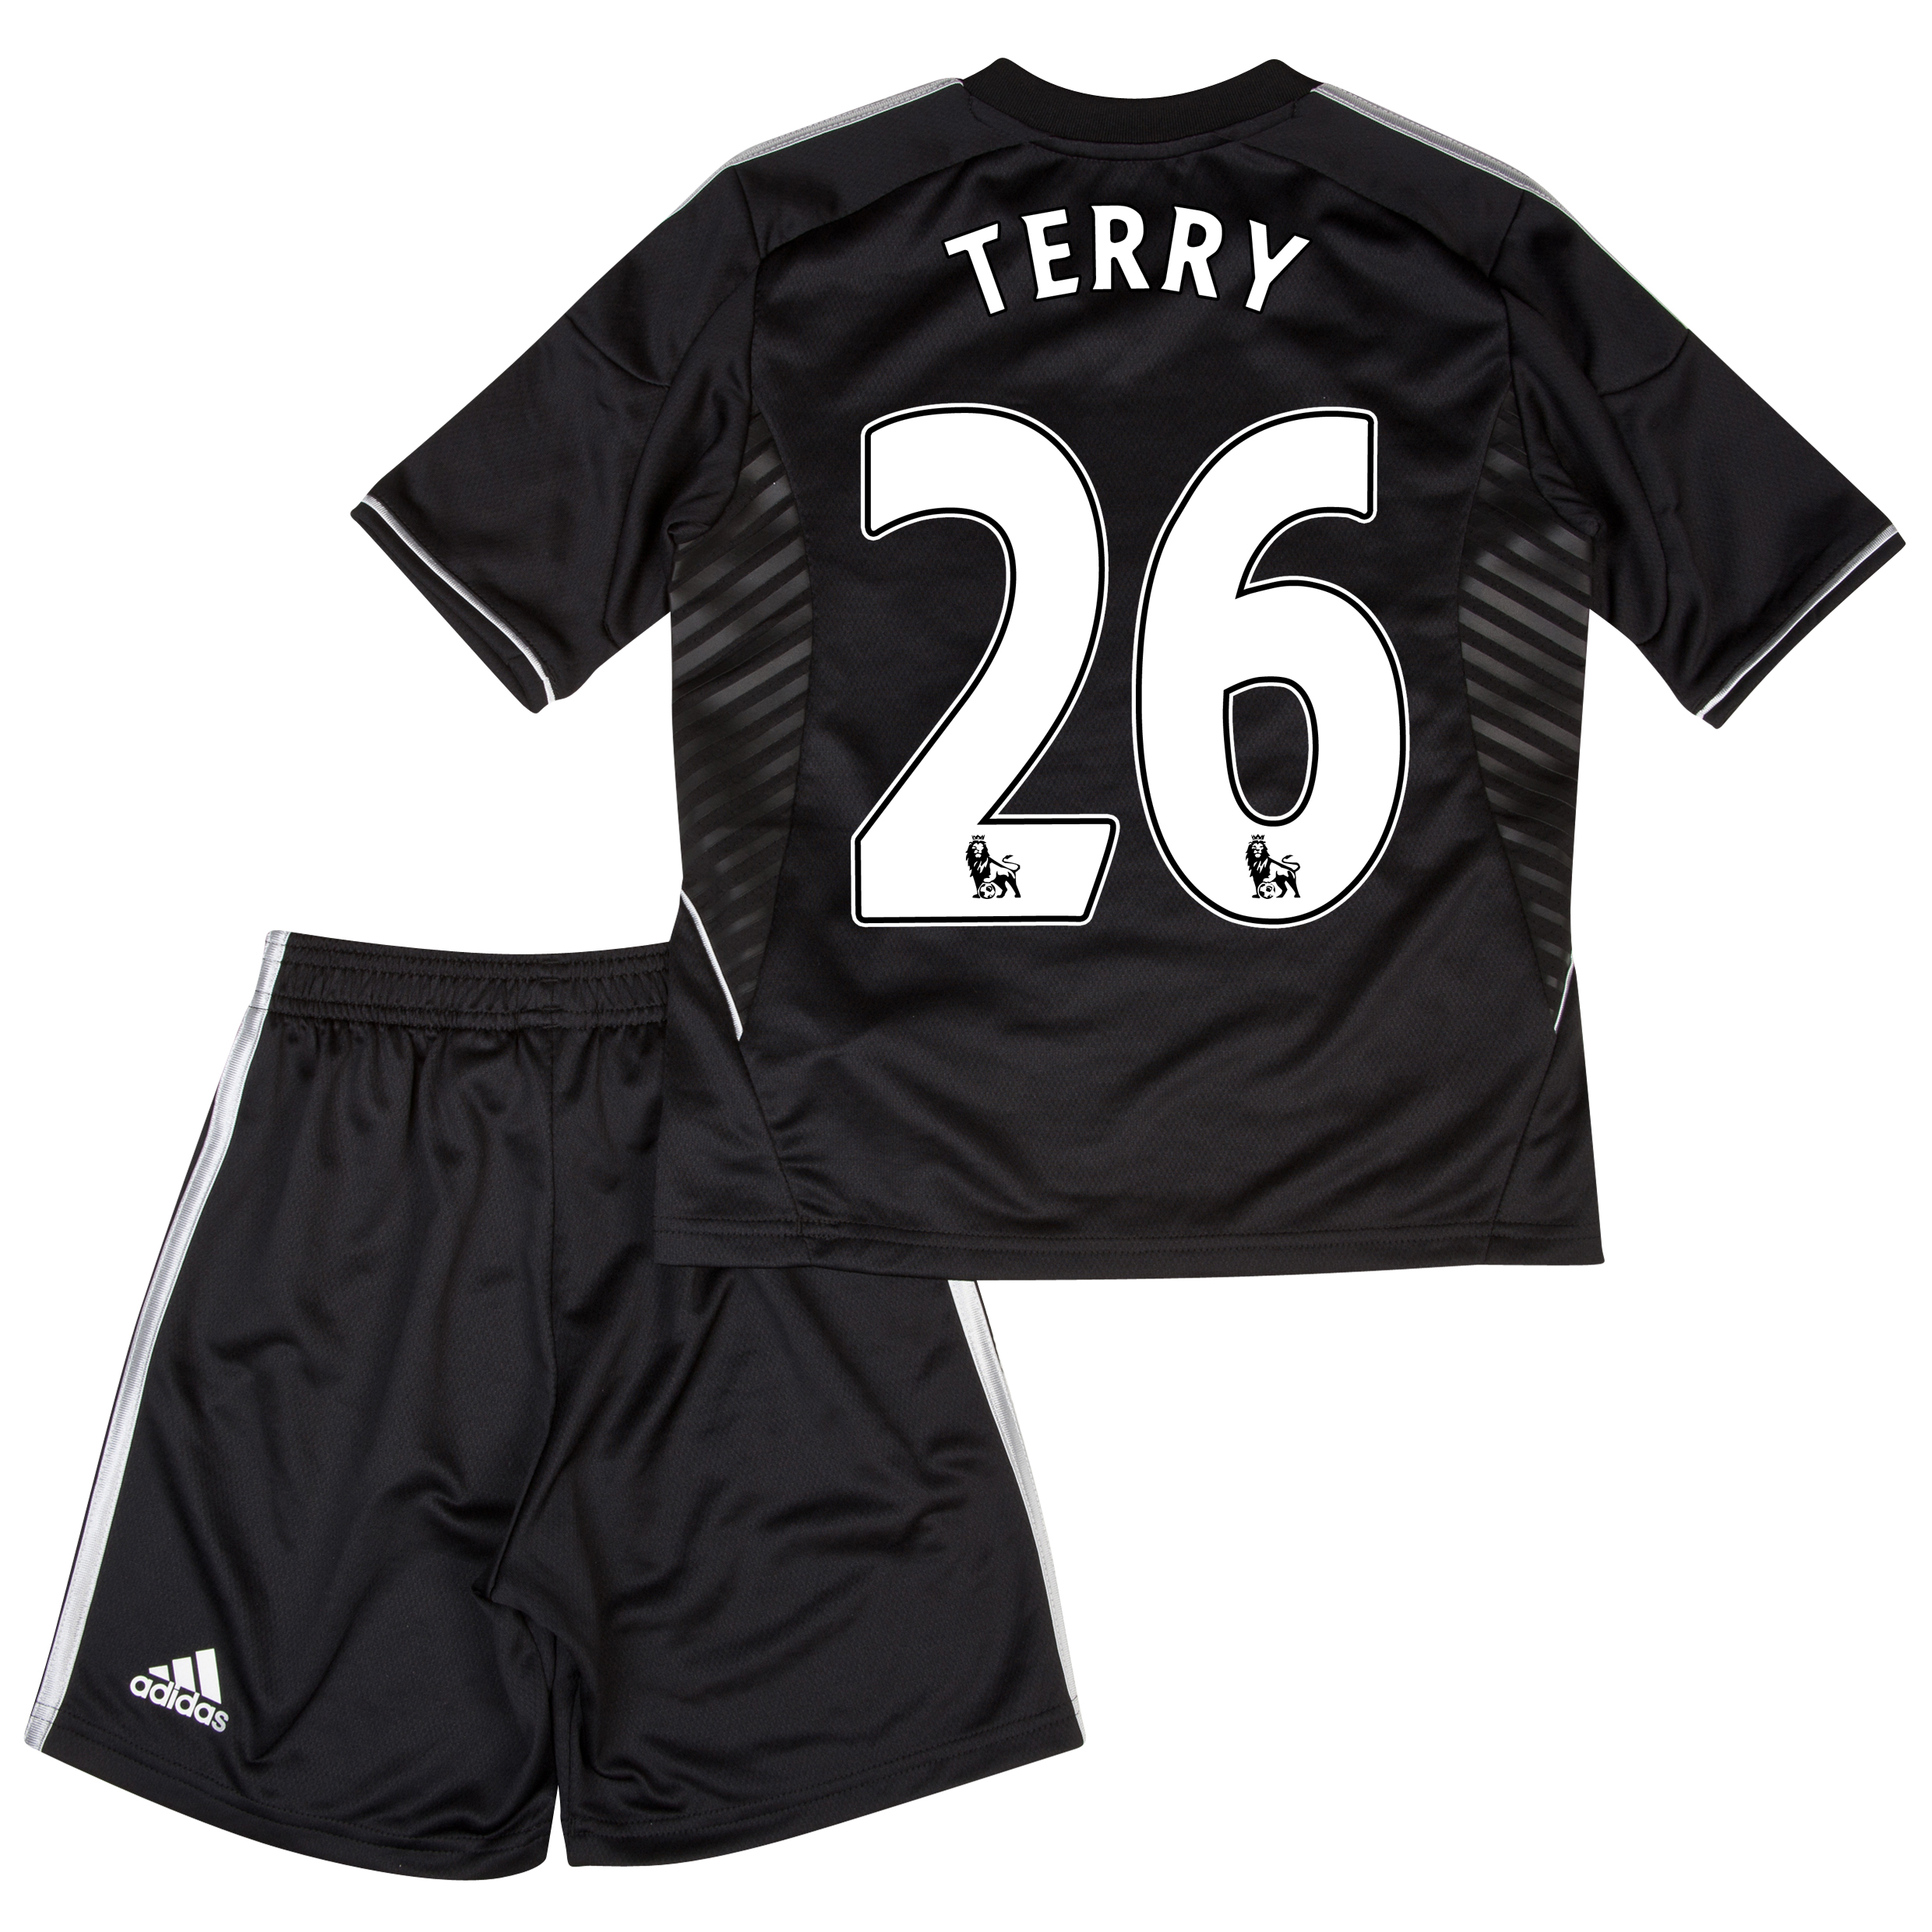 Chelsea Third Mini Kit 2013/14 with Terry 26 printing